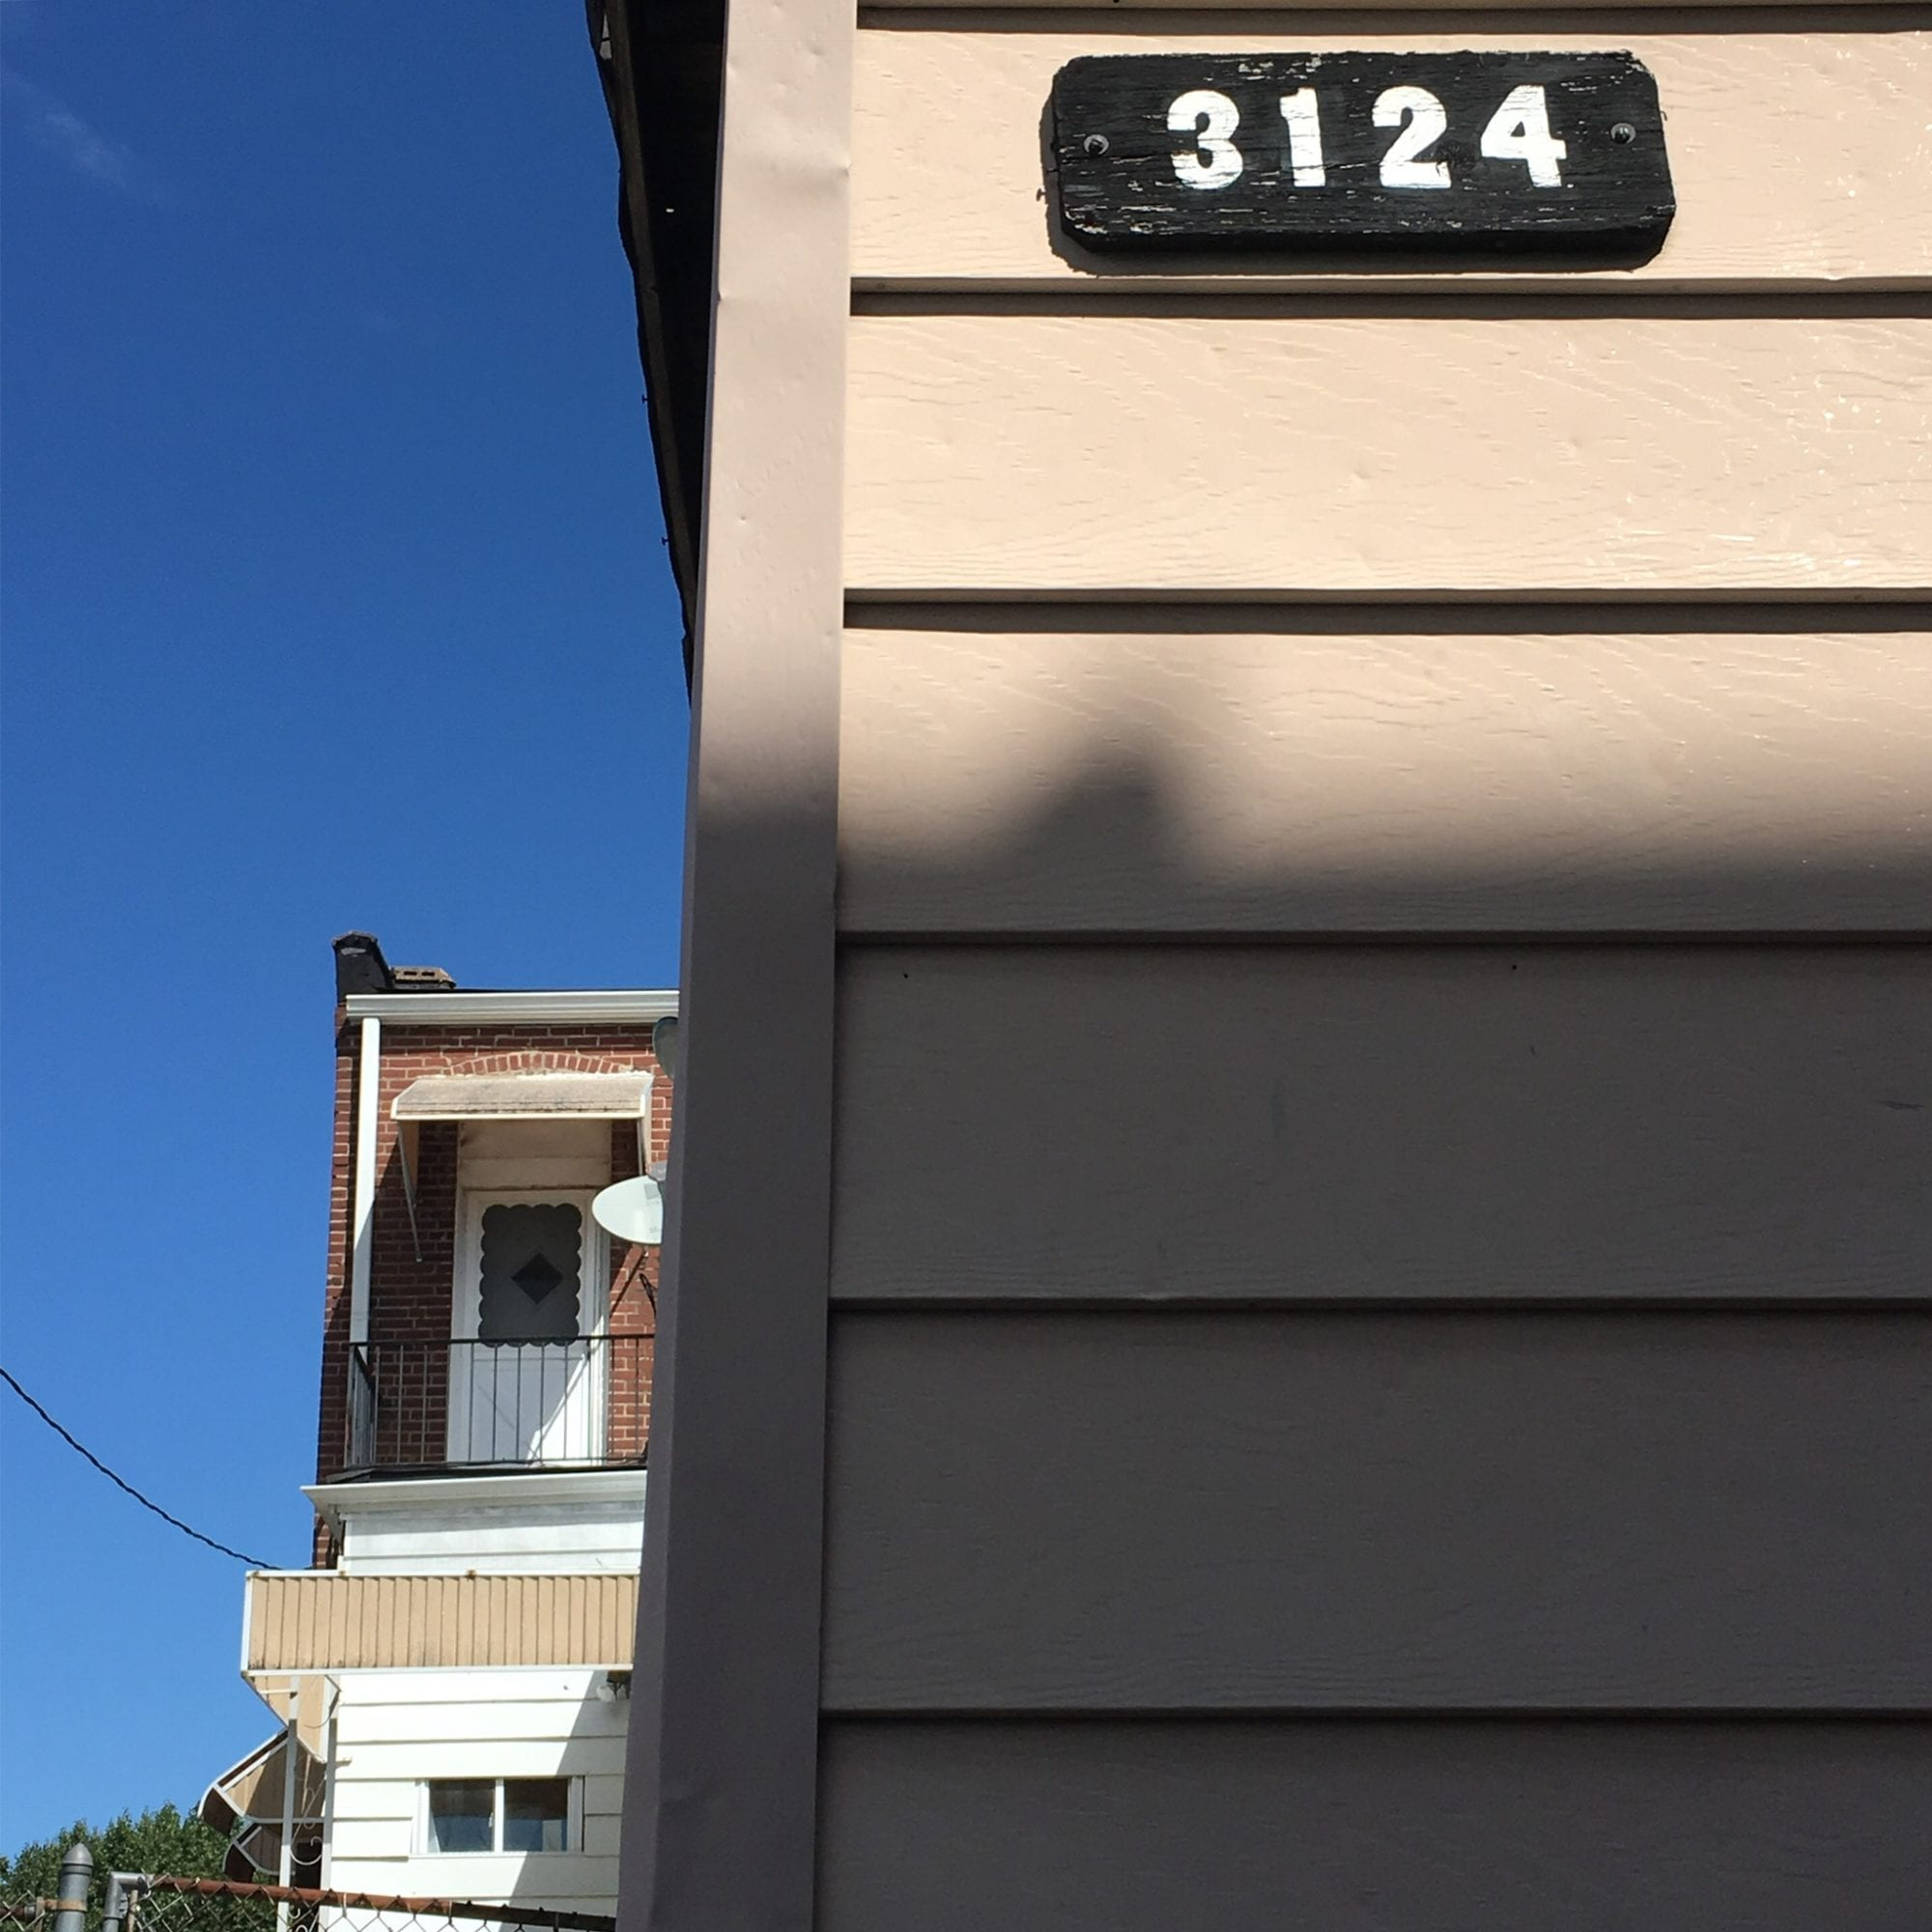 3124, house numbers in Dutchtown, St. Louis. Photo by Josh Burbridge.